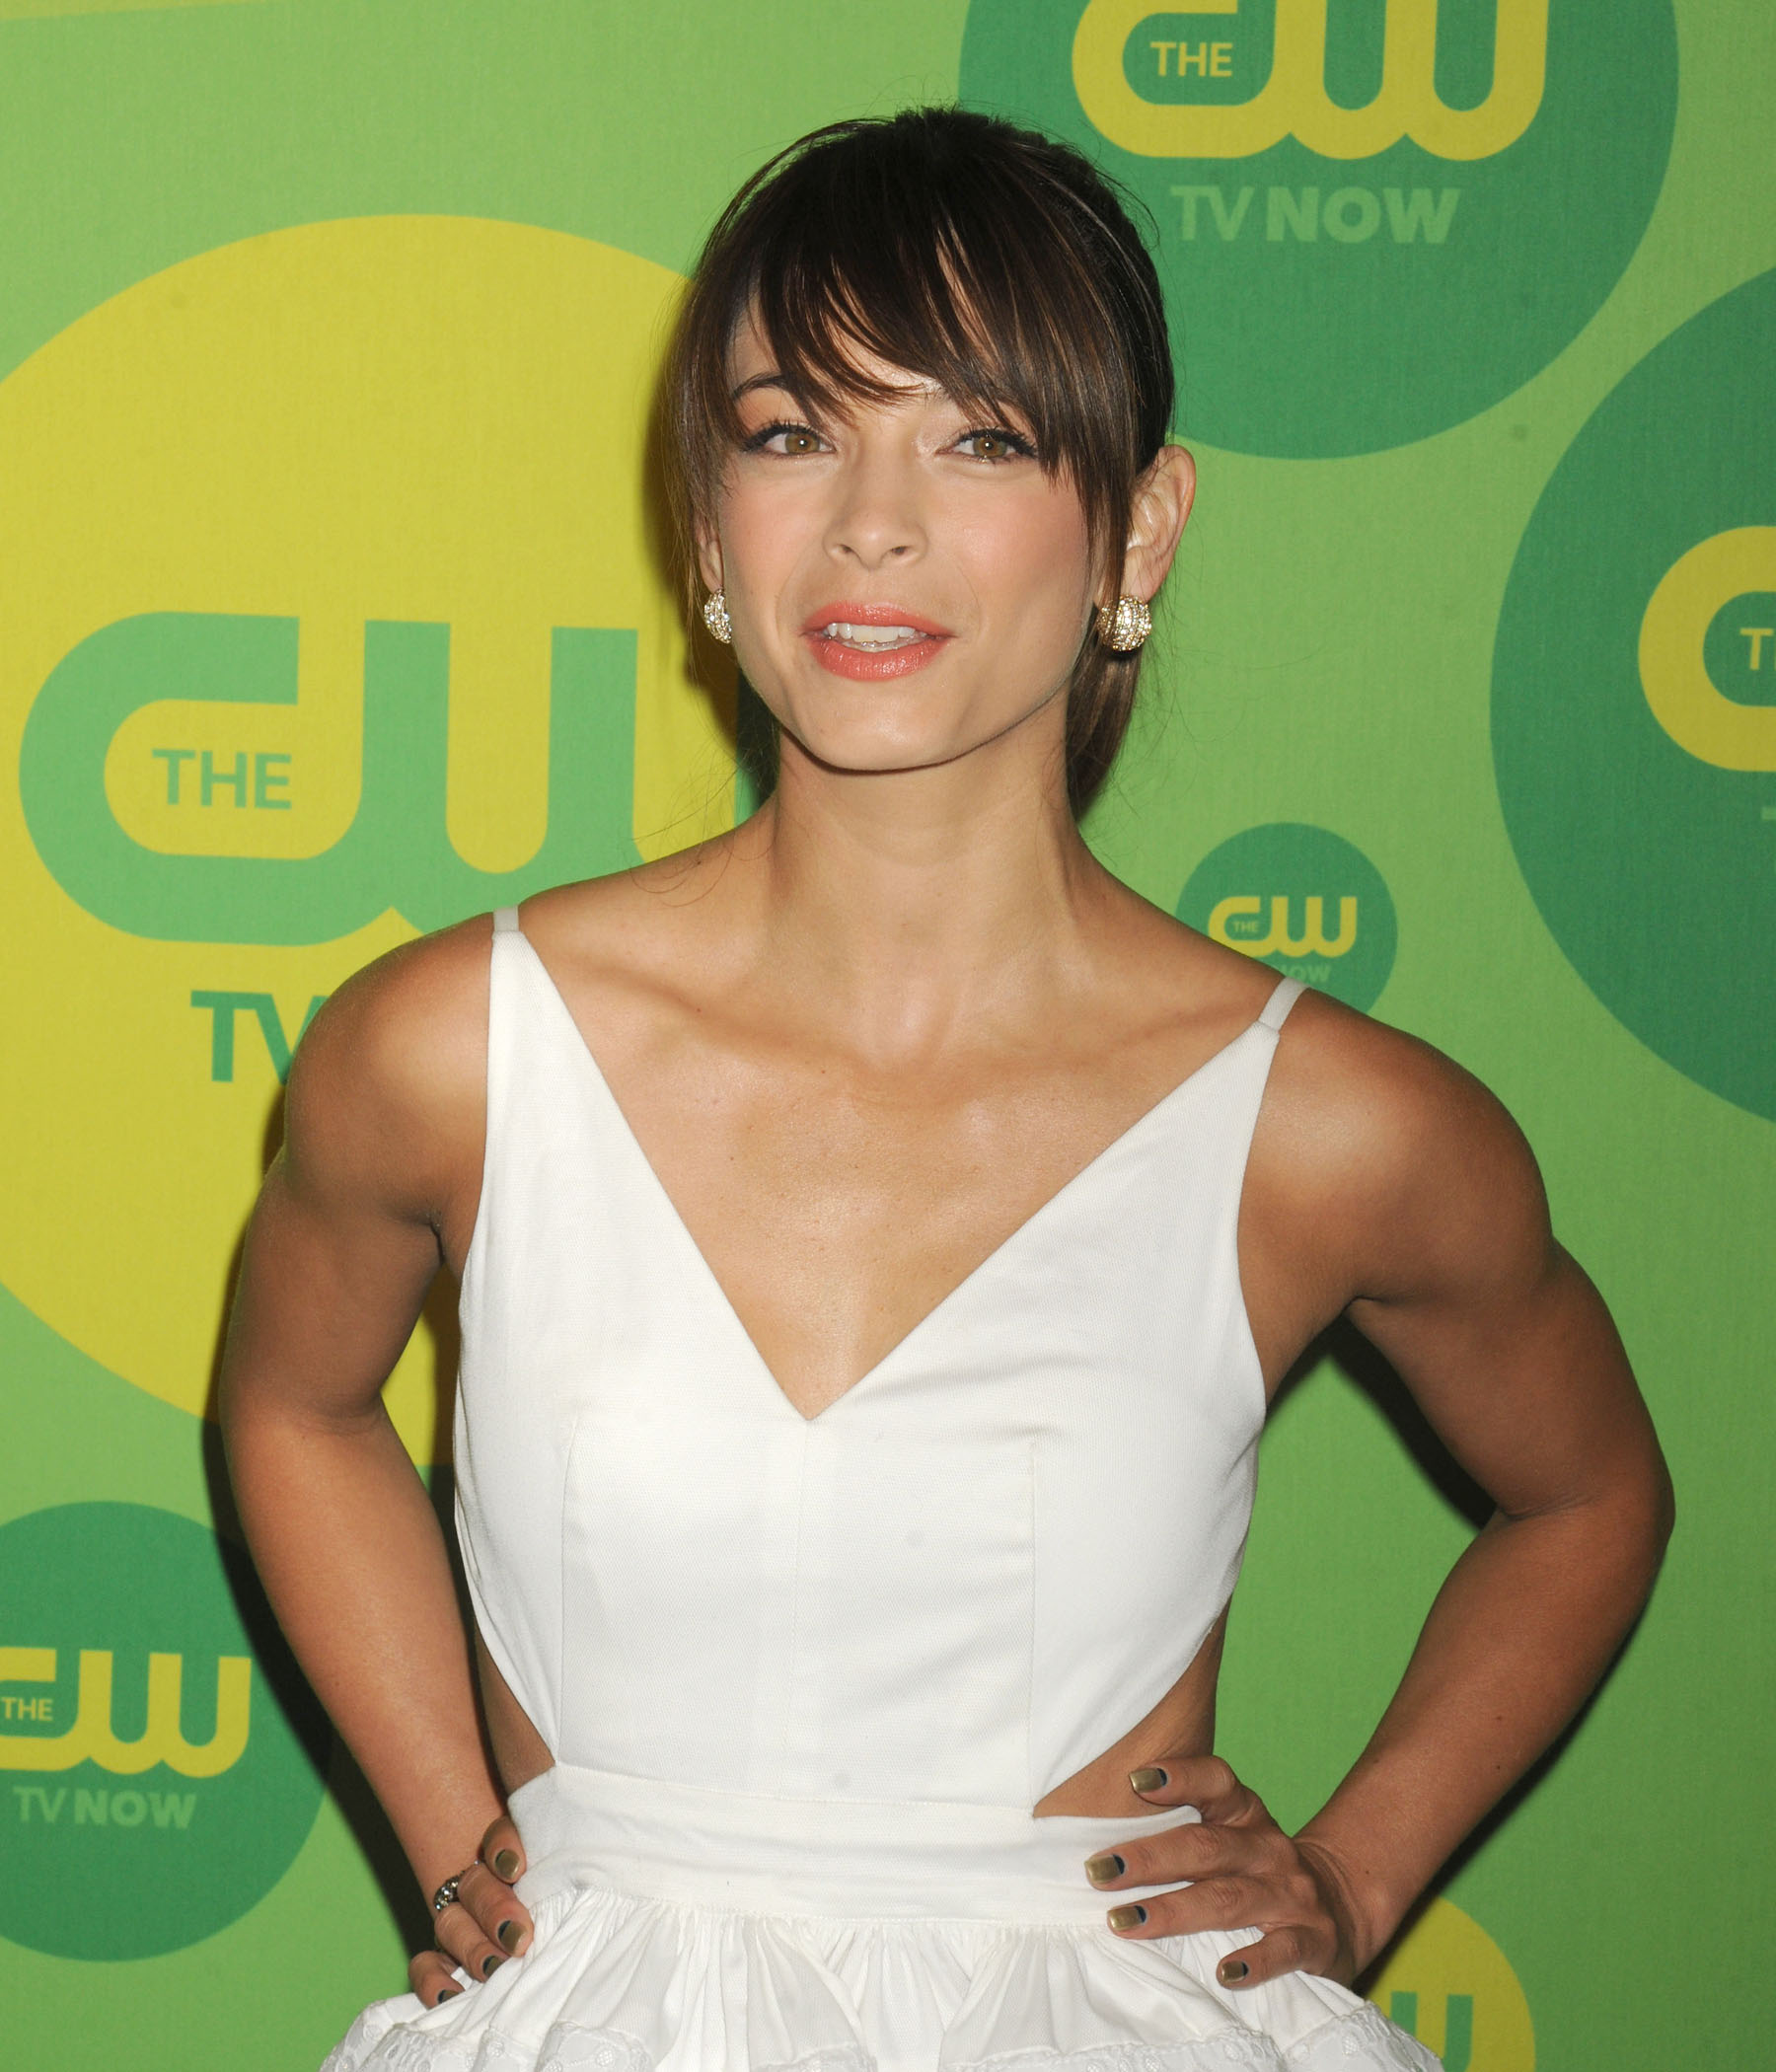 Kristin Kreuk Nude - 1 Pictures: Rating 9.14/10